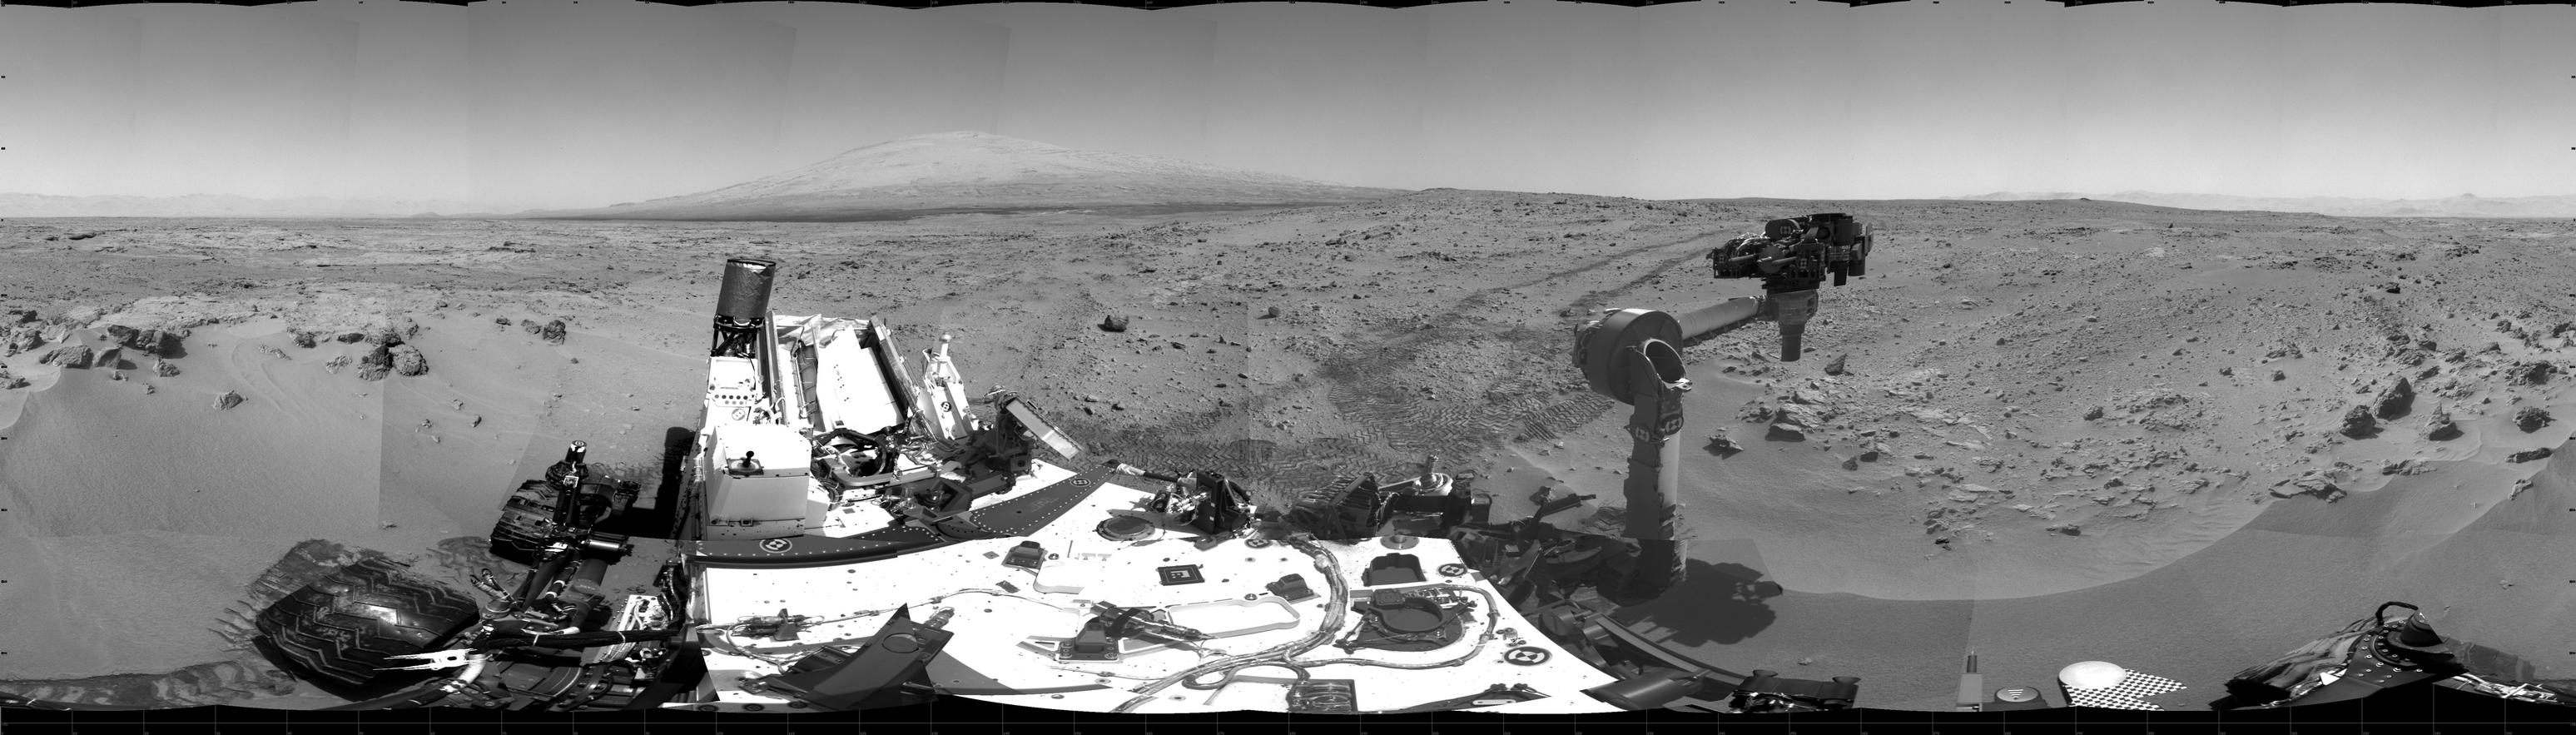 This 360-degree scene shows the surroundings of the location where NASA Mars rover Curiosity arrived on the 59th Martian day, or sol, of the rover's mission on Mars (Oct. 5, 2012).